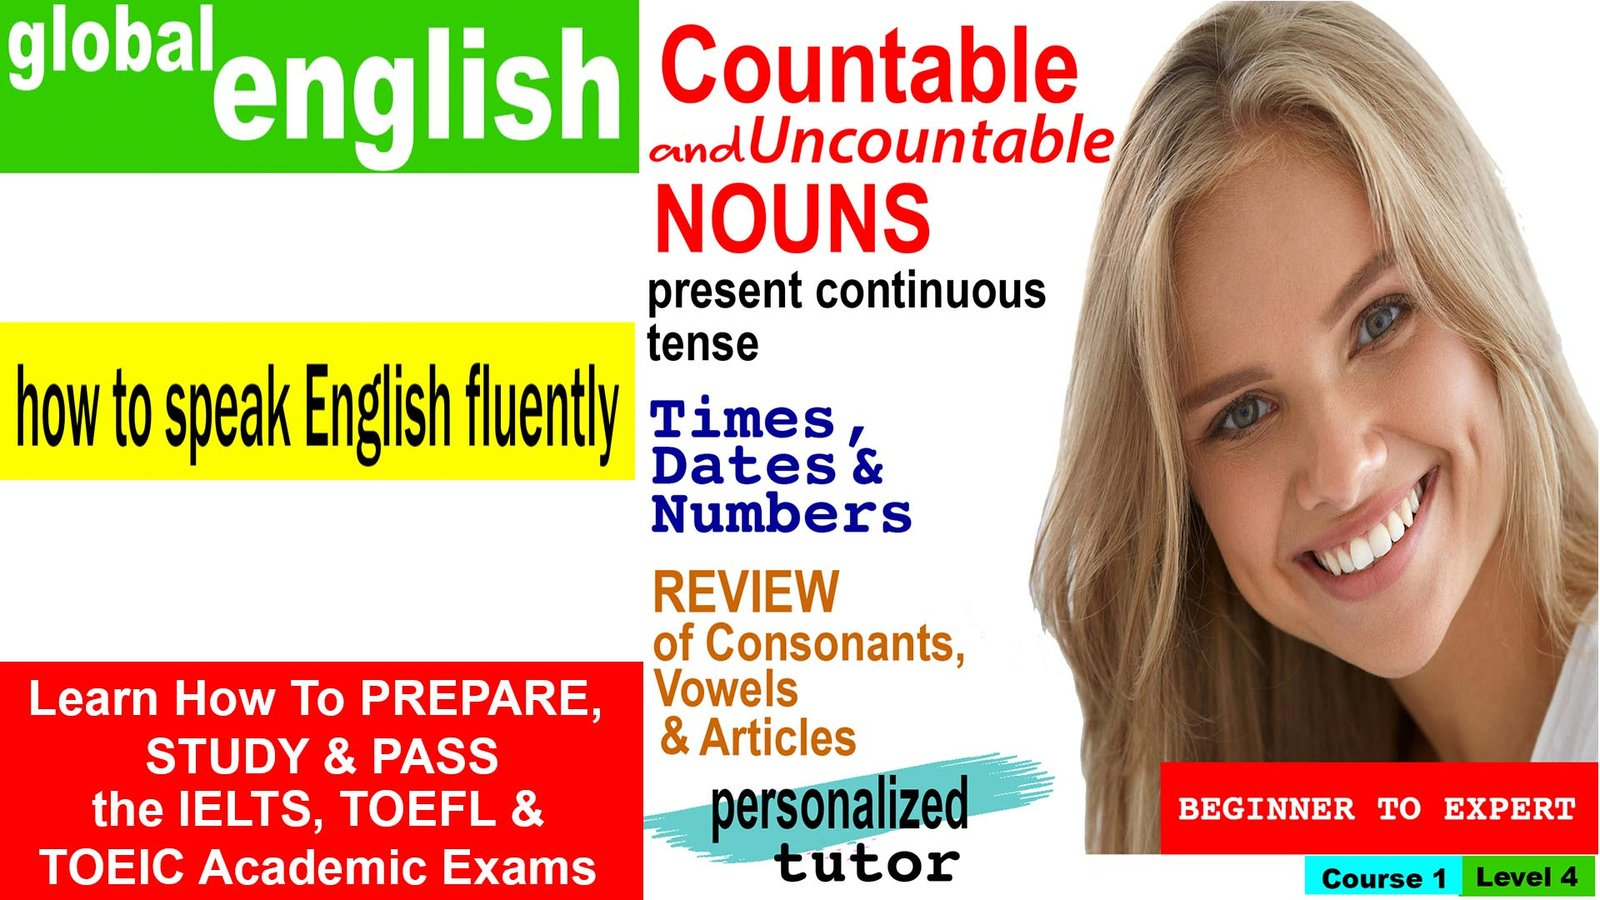 Global English Course 1 Lesson 4: Learn English as a Second Language - Countable and Uncountable Nouns, Present Continuous Tense,Times, Dates & Numbers, Review of Consonants and Vowels, Review of Articles